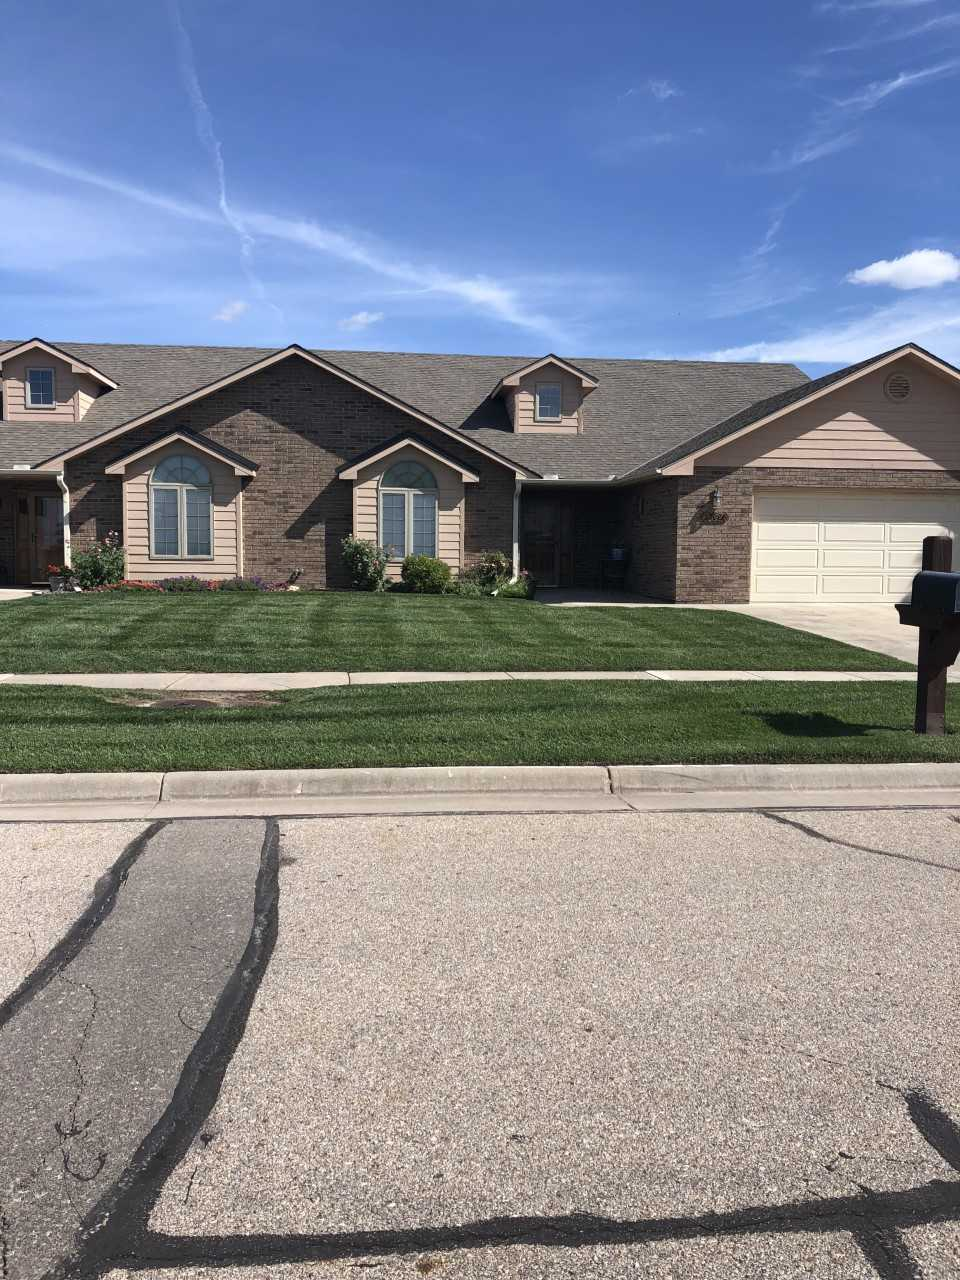 Sallee Lawn Care image 1